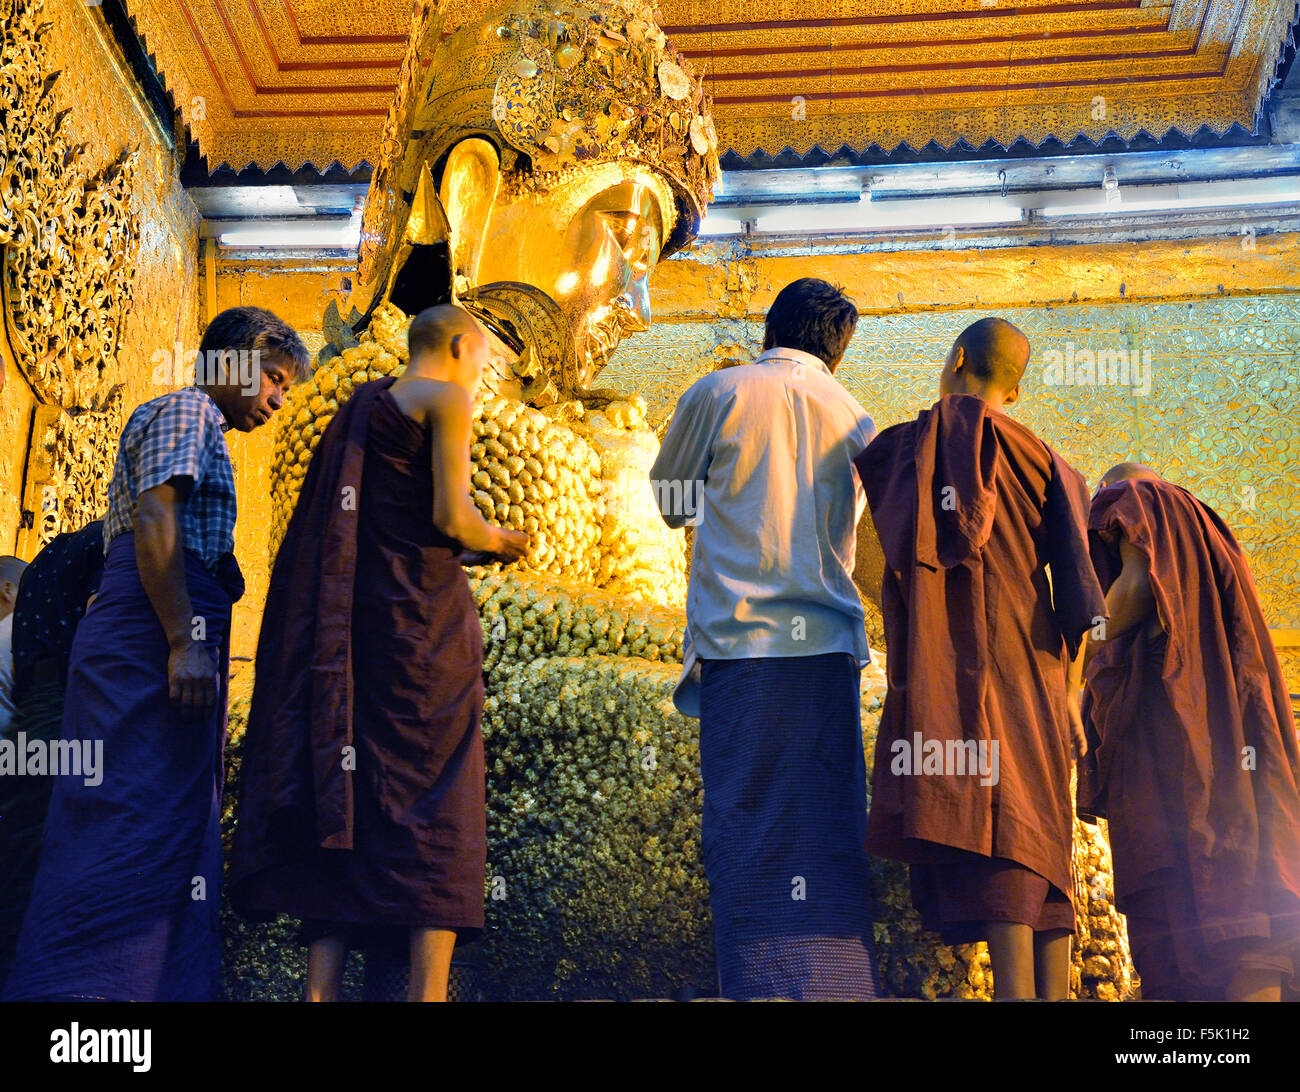 Monks applying gold leaf to the Mahamuni Buddha,Mandalay,Myanmar, (Burma) - Stock Image